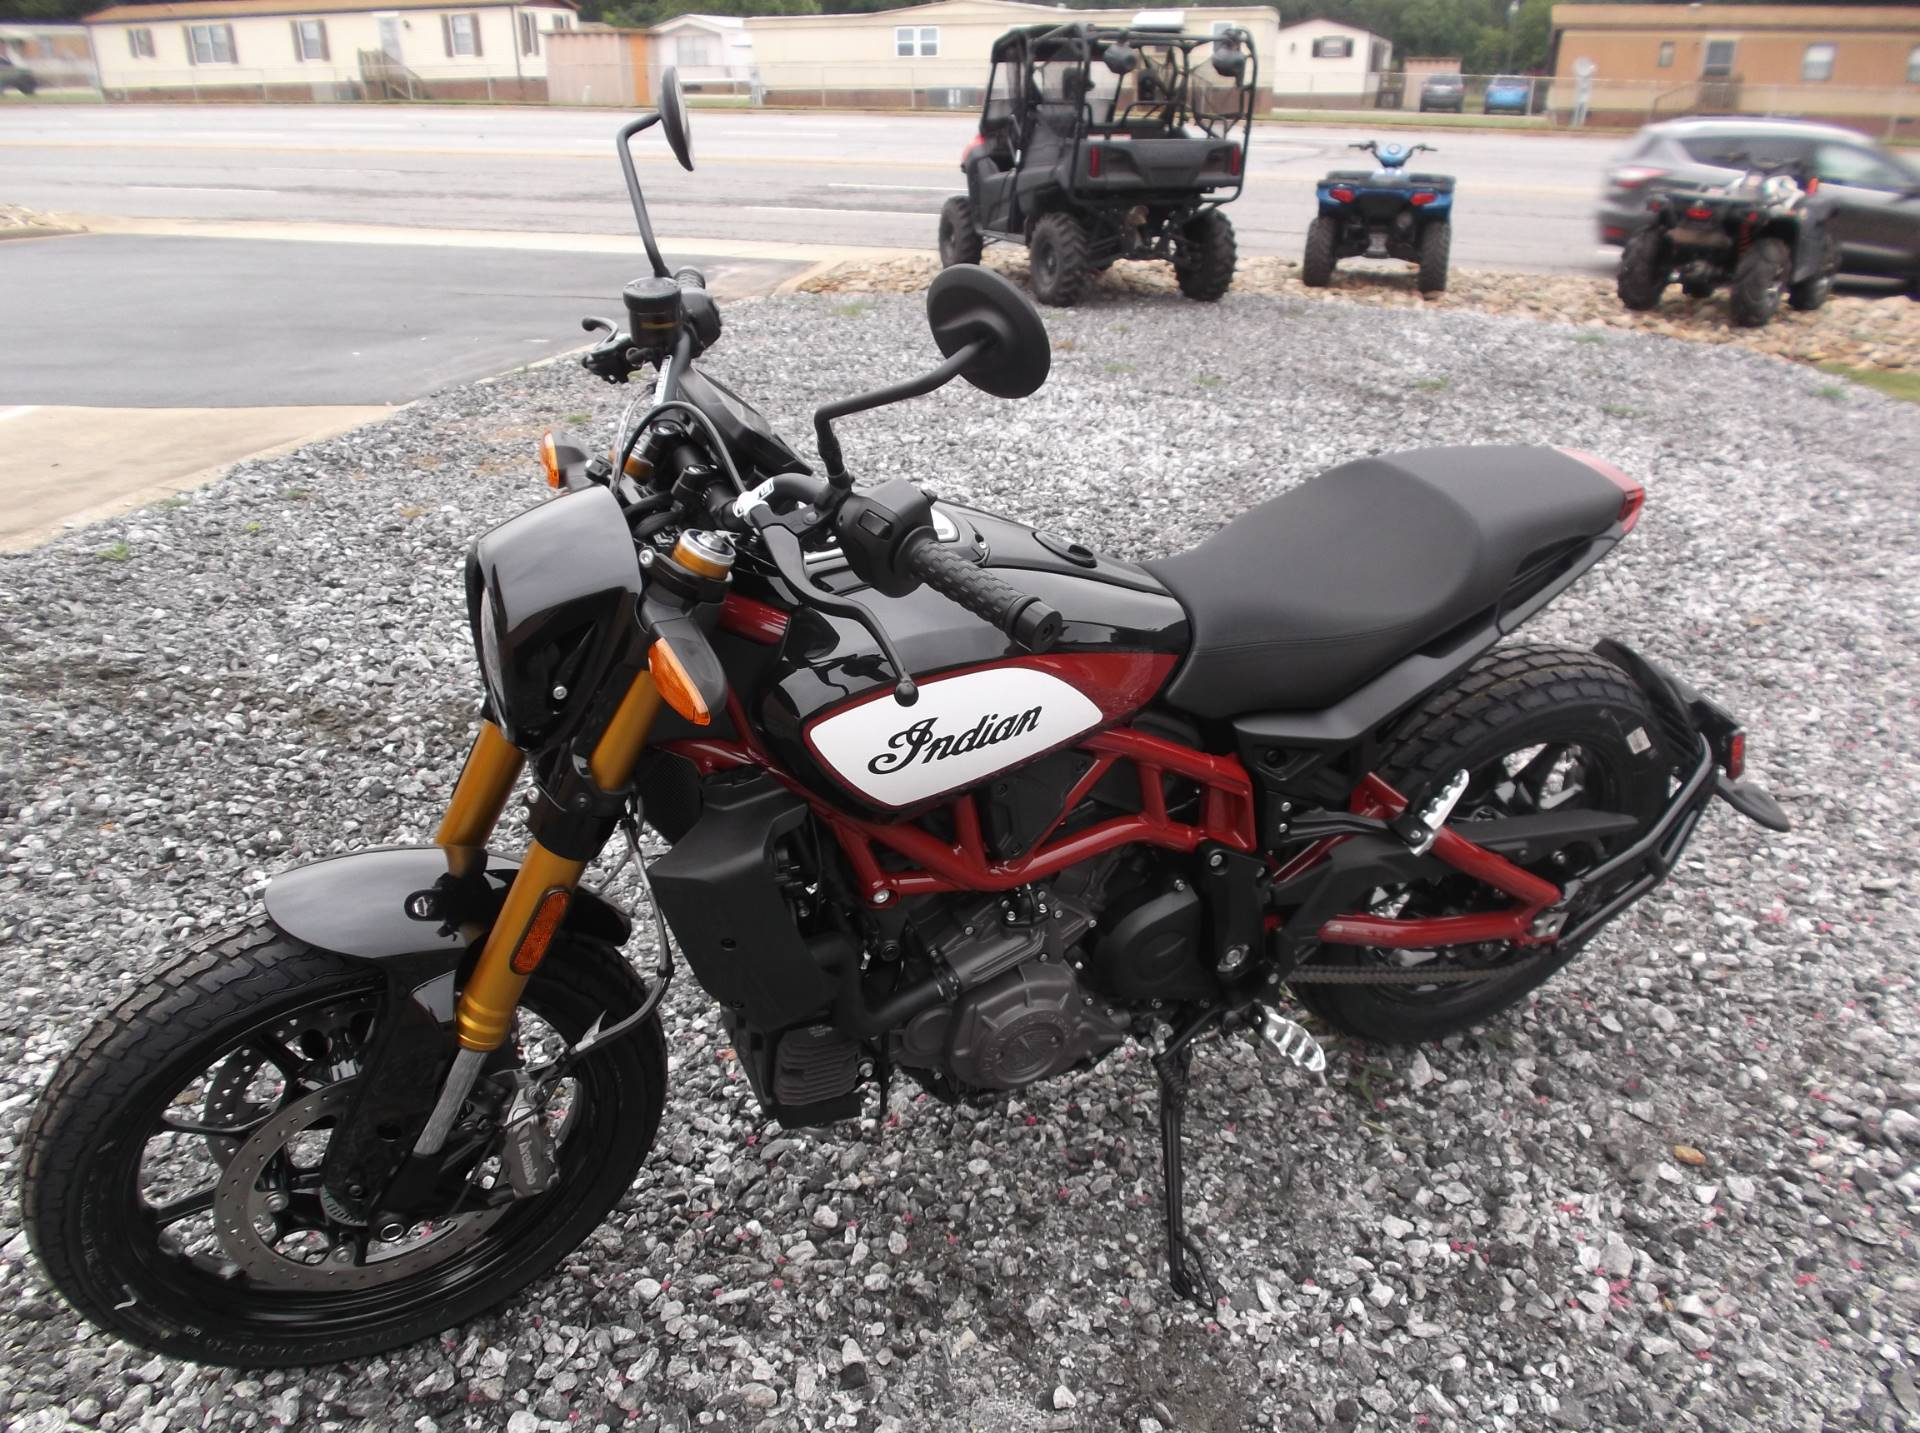 2019 Indian FTR™ 1200 S in Greer, South Carolina - Photo 12